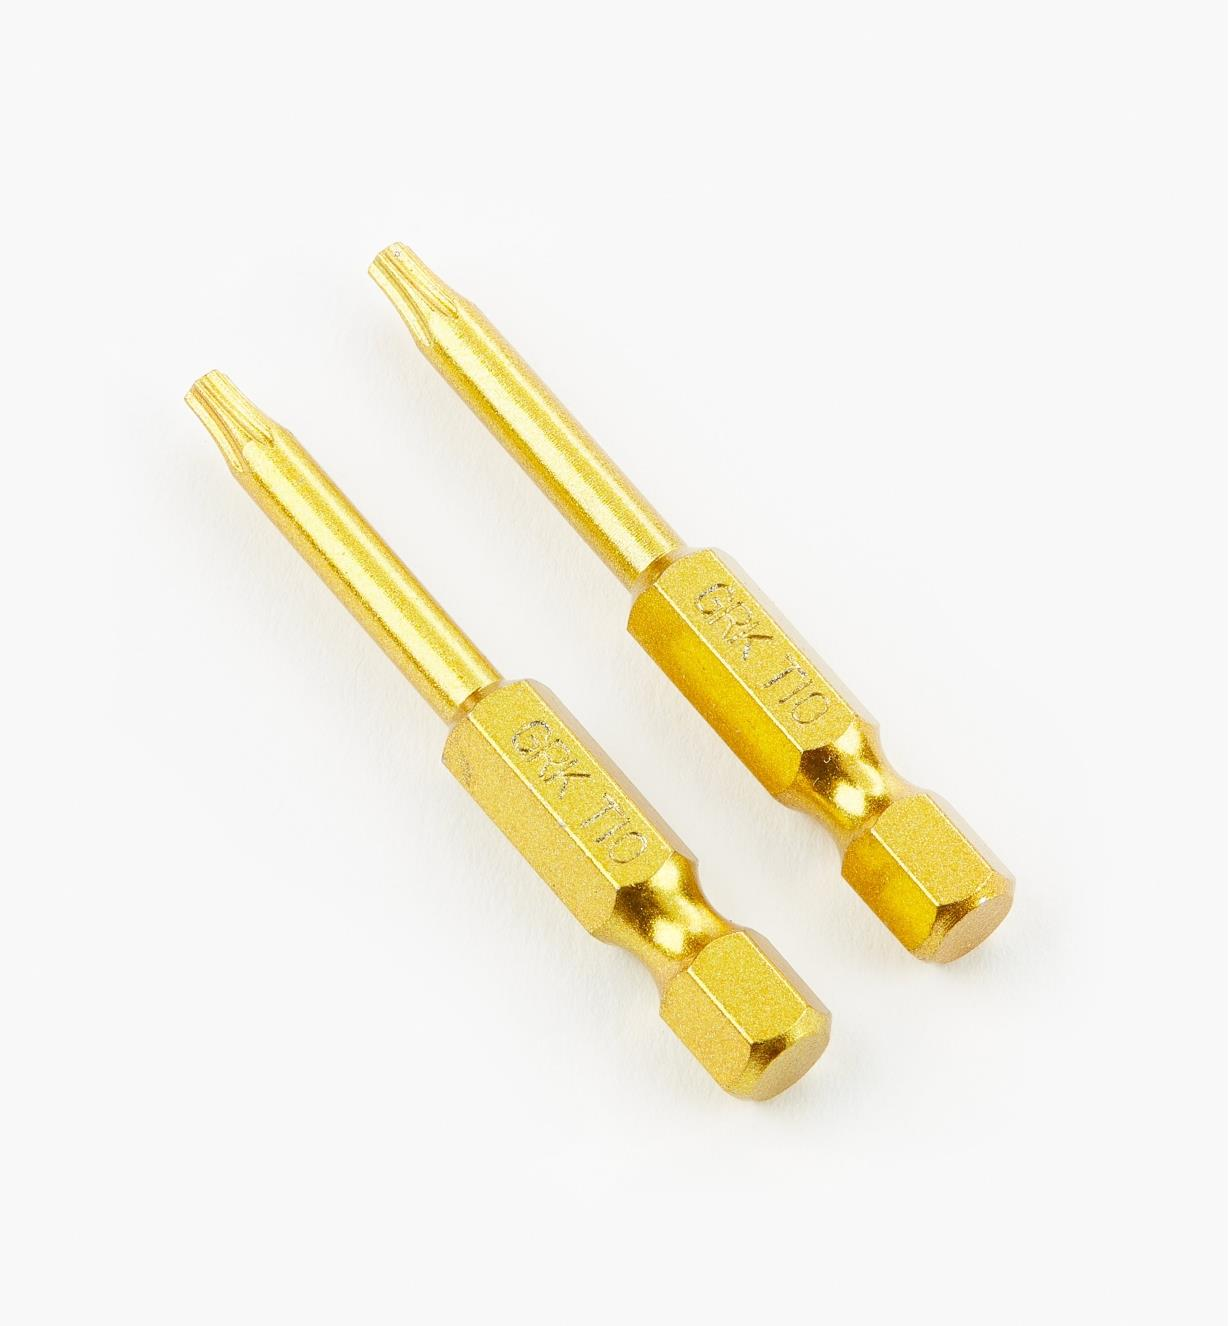 "93Z0112 - Yellow T-10 x 2"" Torx Bits, pair"